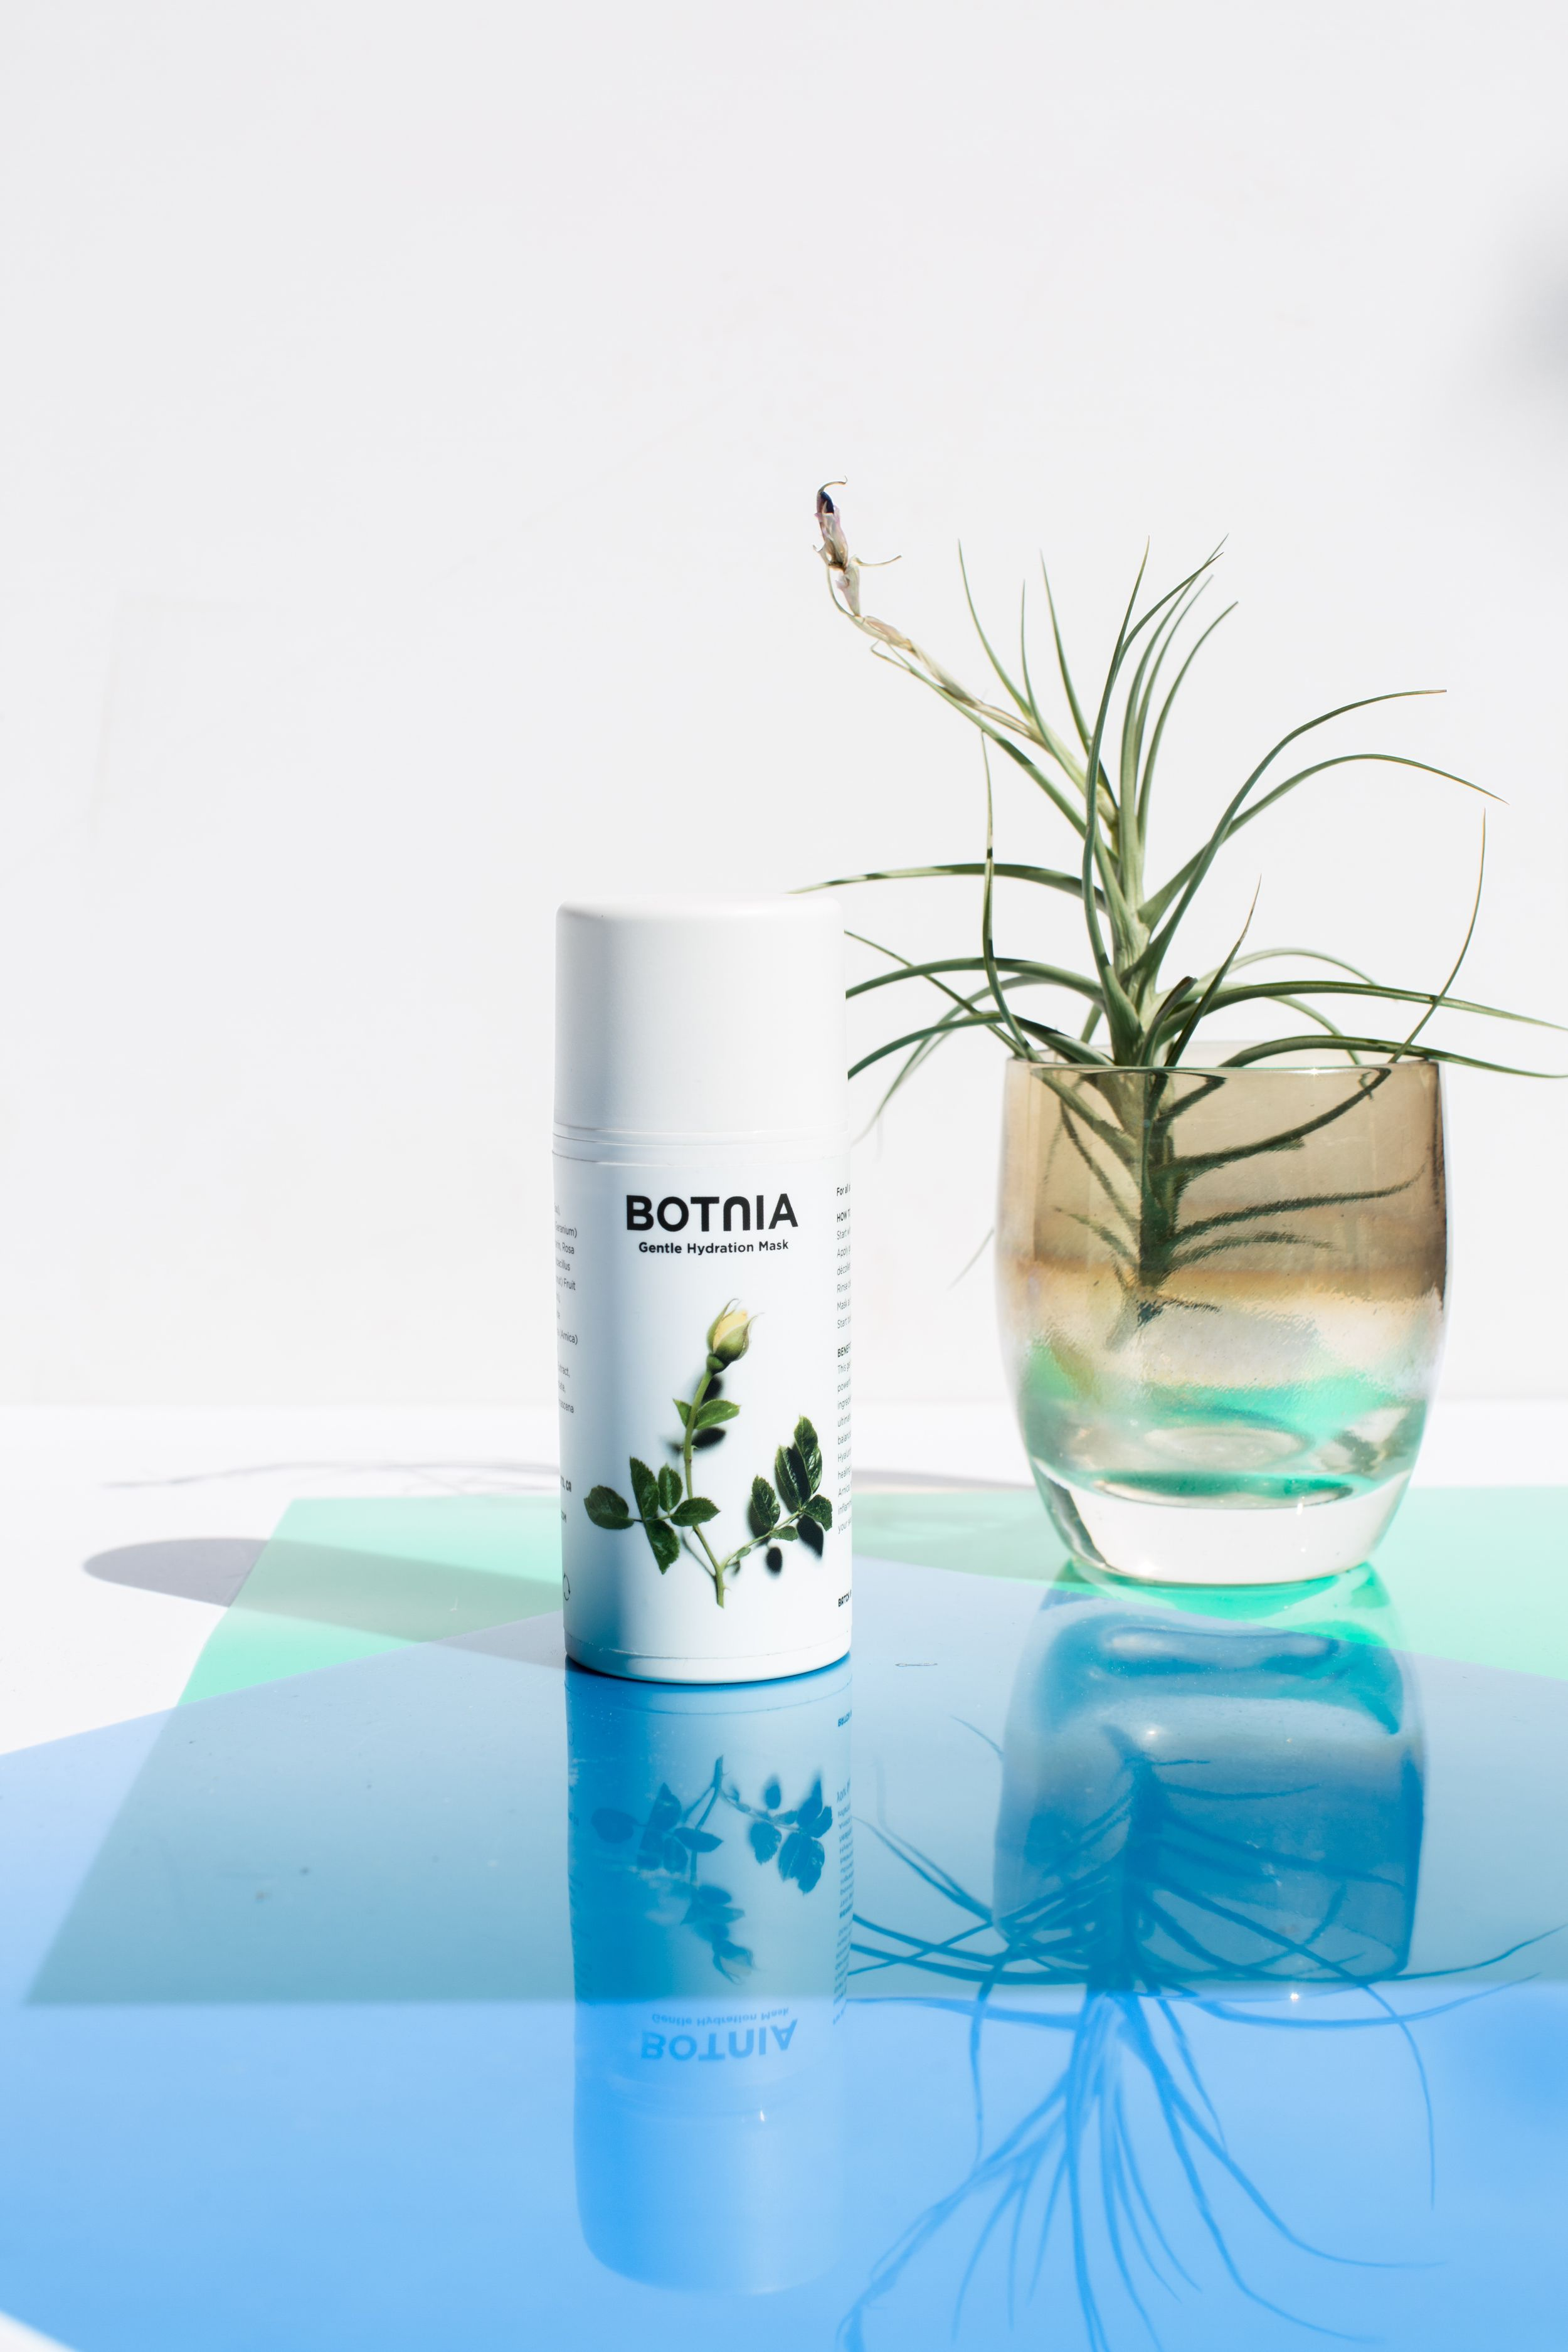 Botnia product picture for beauclair beauty bar